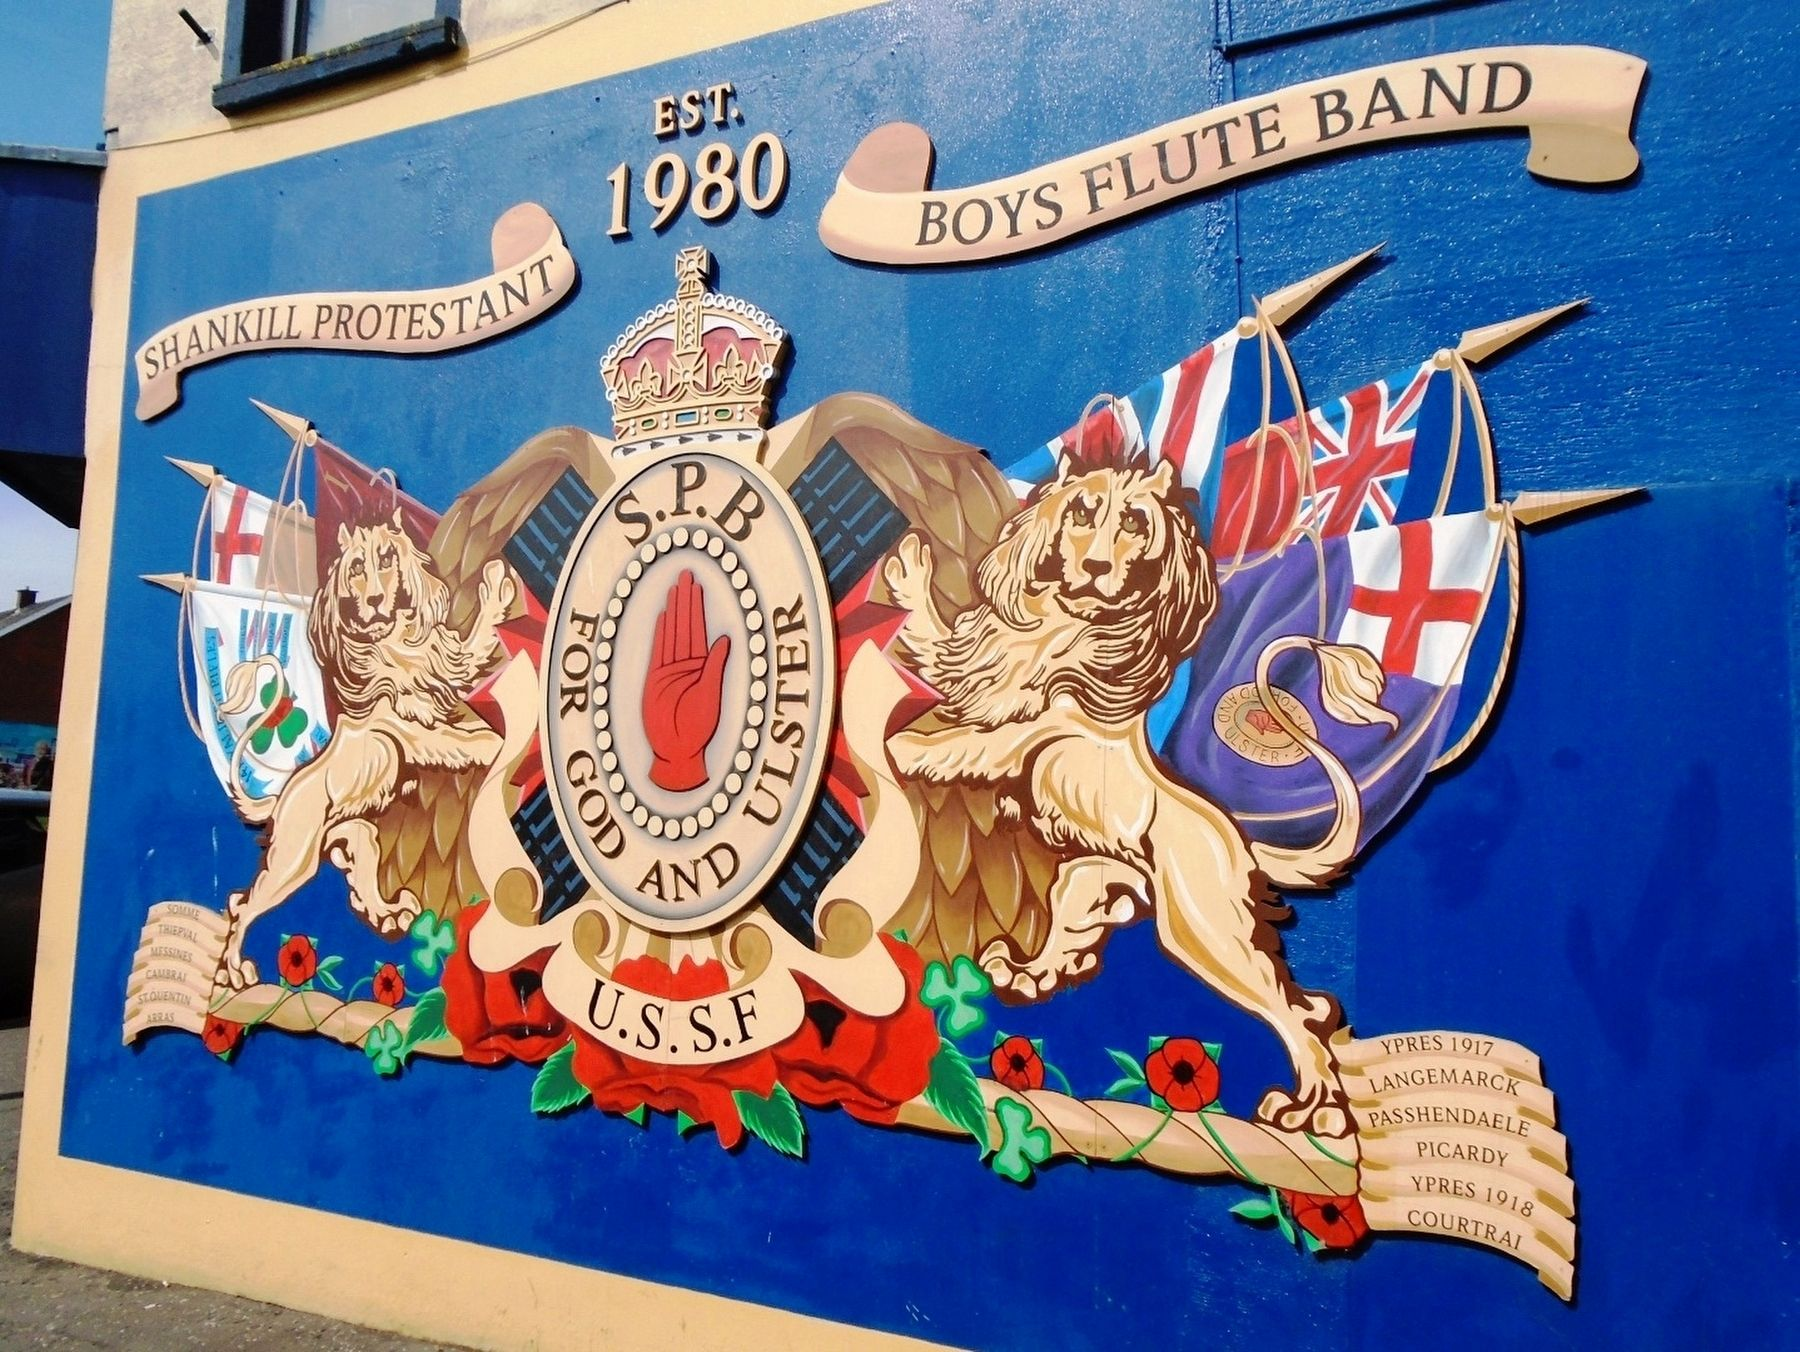 Shankill Protestant Boys Flute Band Mural image. Click for full size.